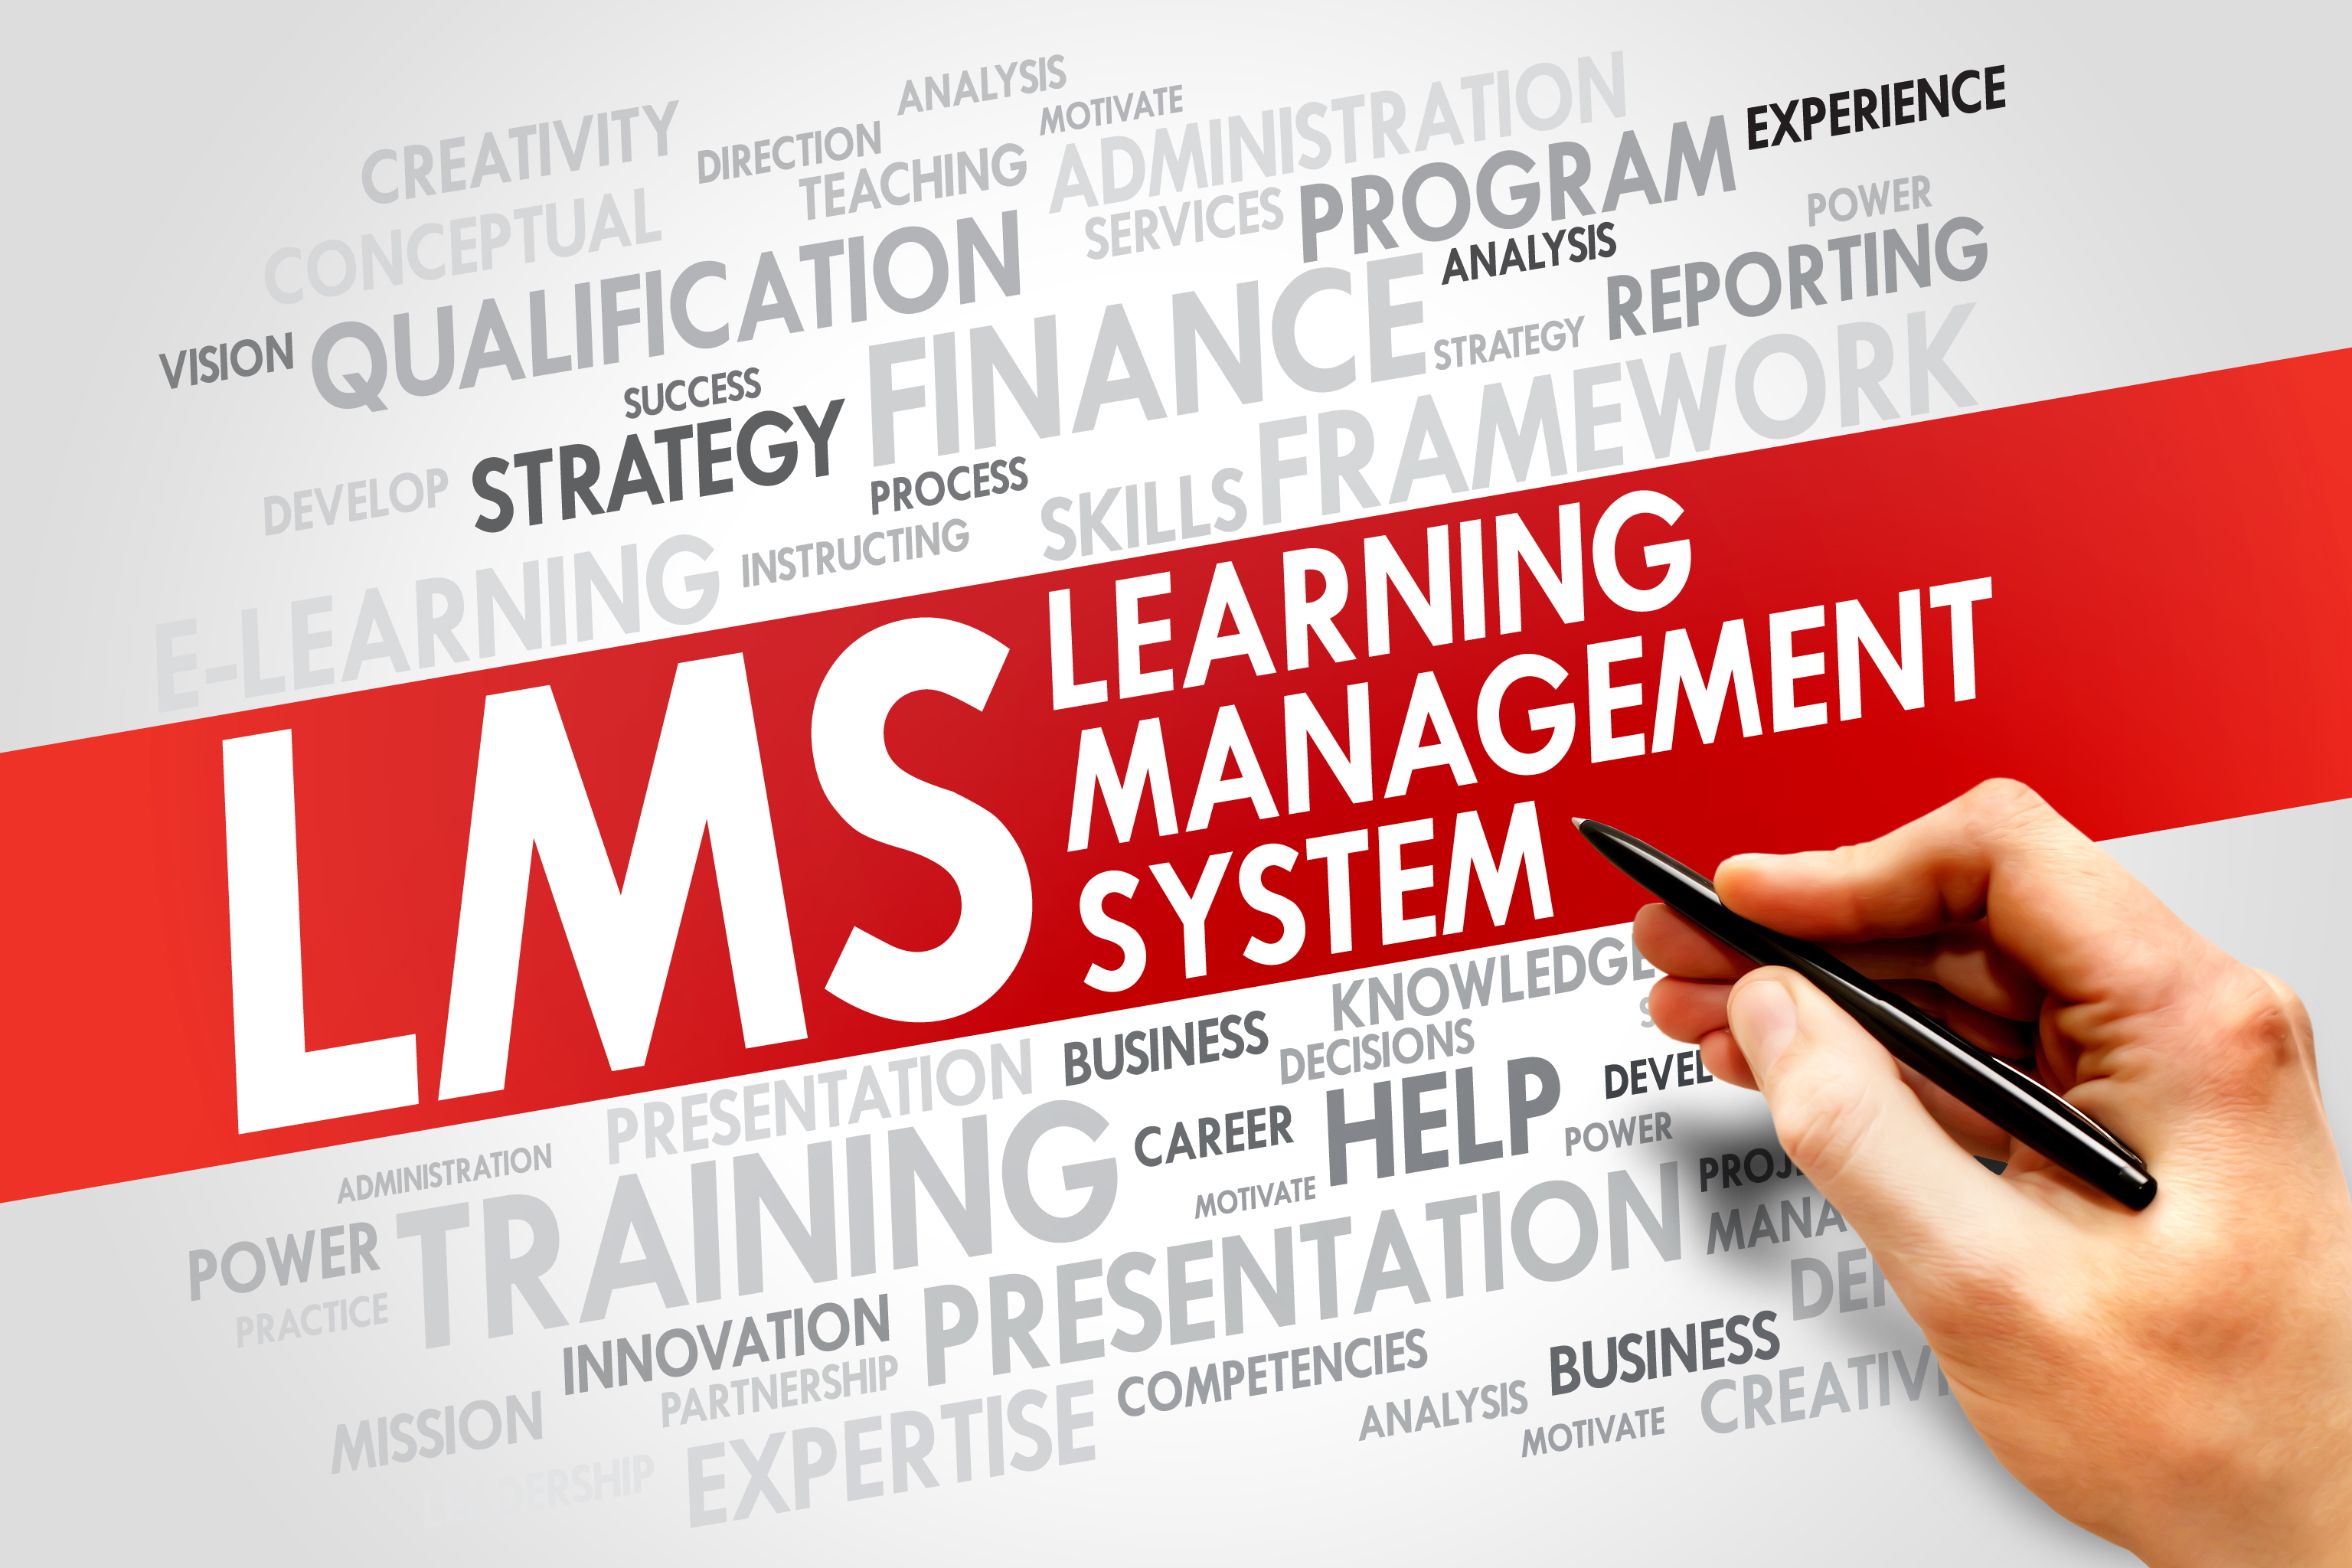 Open Edx The Open Source Learning Management System For